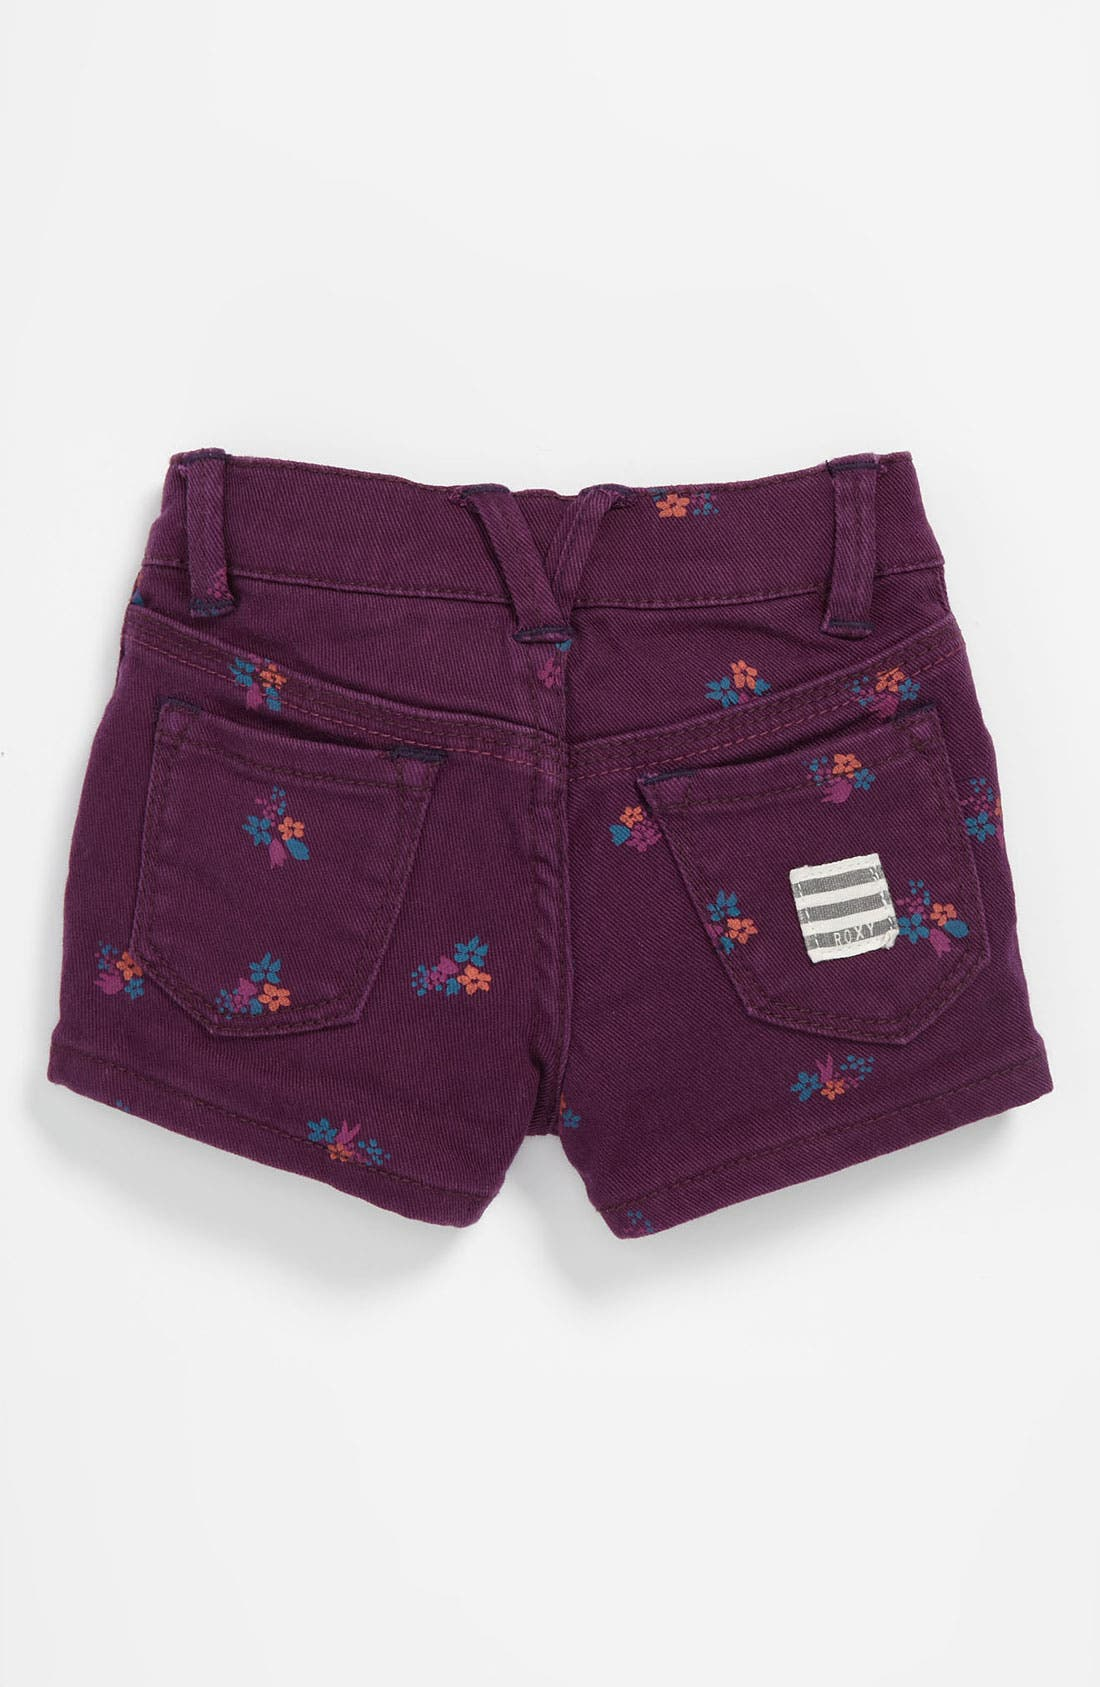 Main Image - 'Sundown' Shorts (Infant)